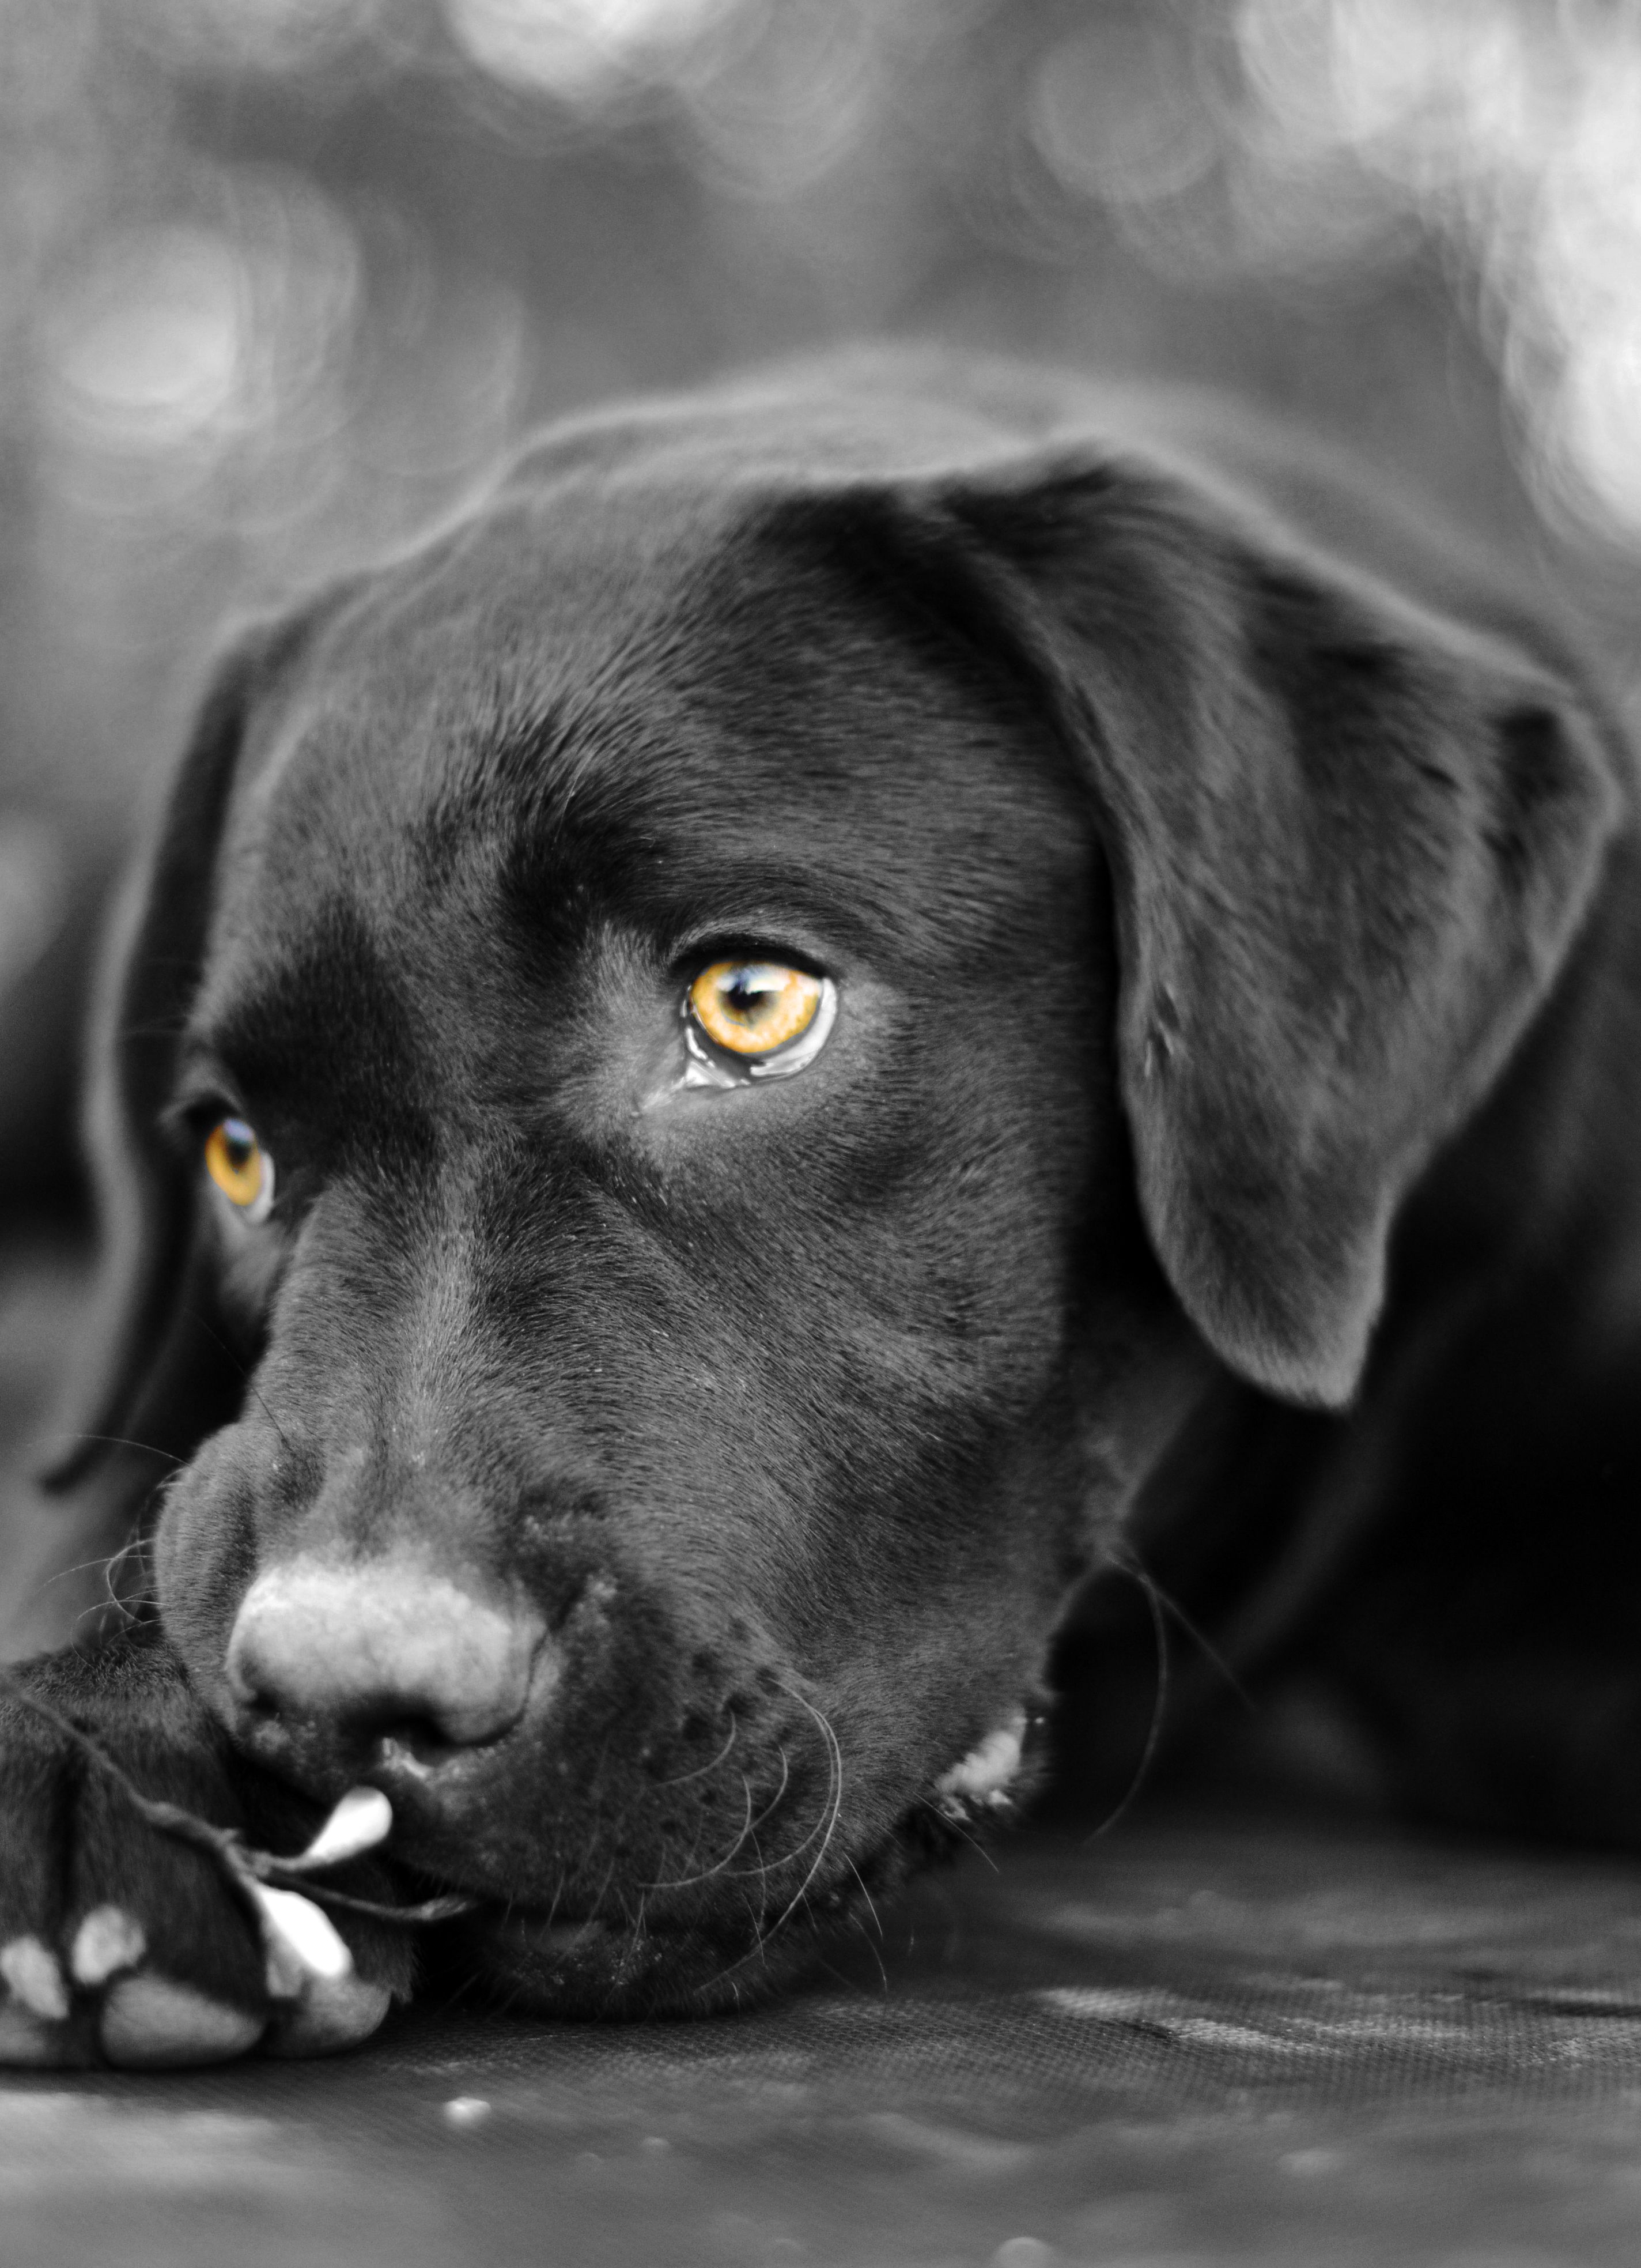 Best Sad Black Adorable Dog - d41201c0d9f30f6d9b19560ccdb28a9c  Gallery_711567  .jpg